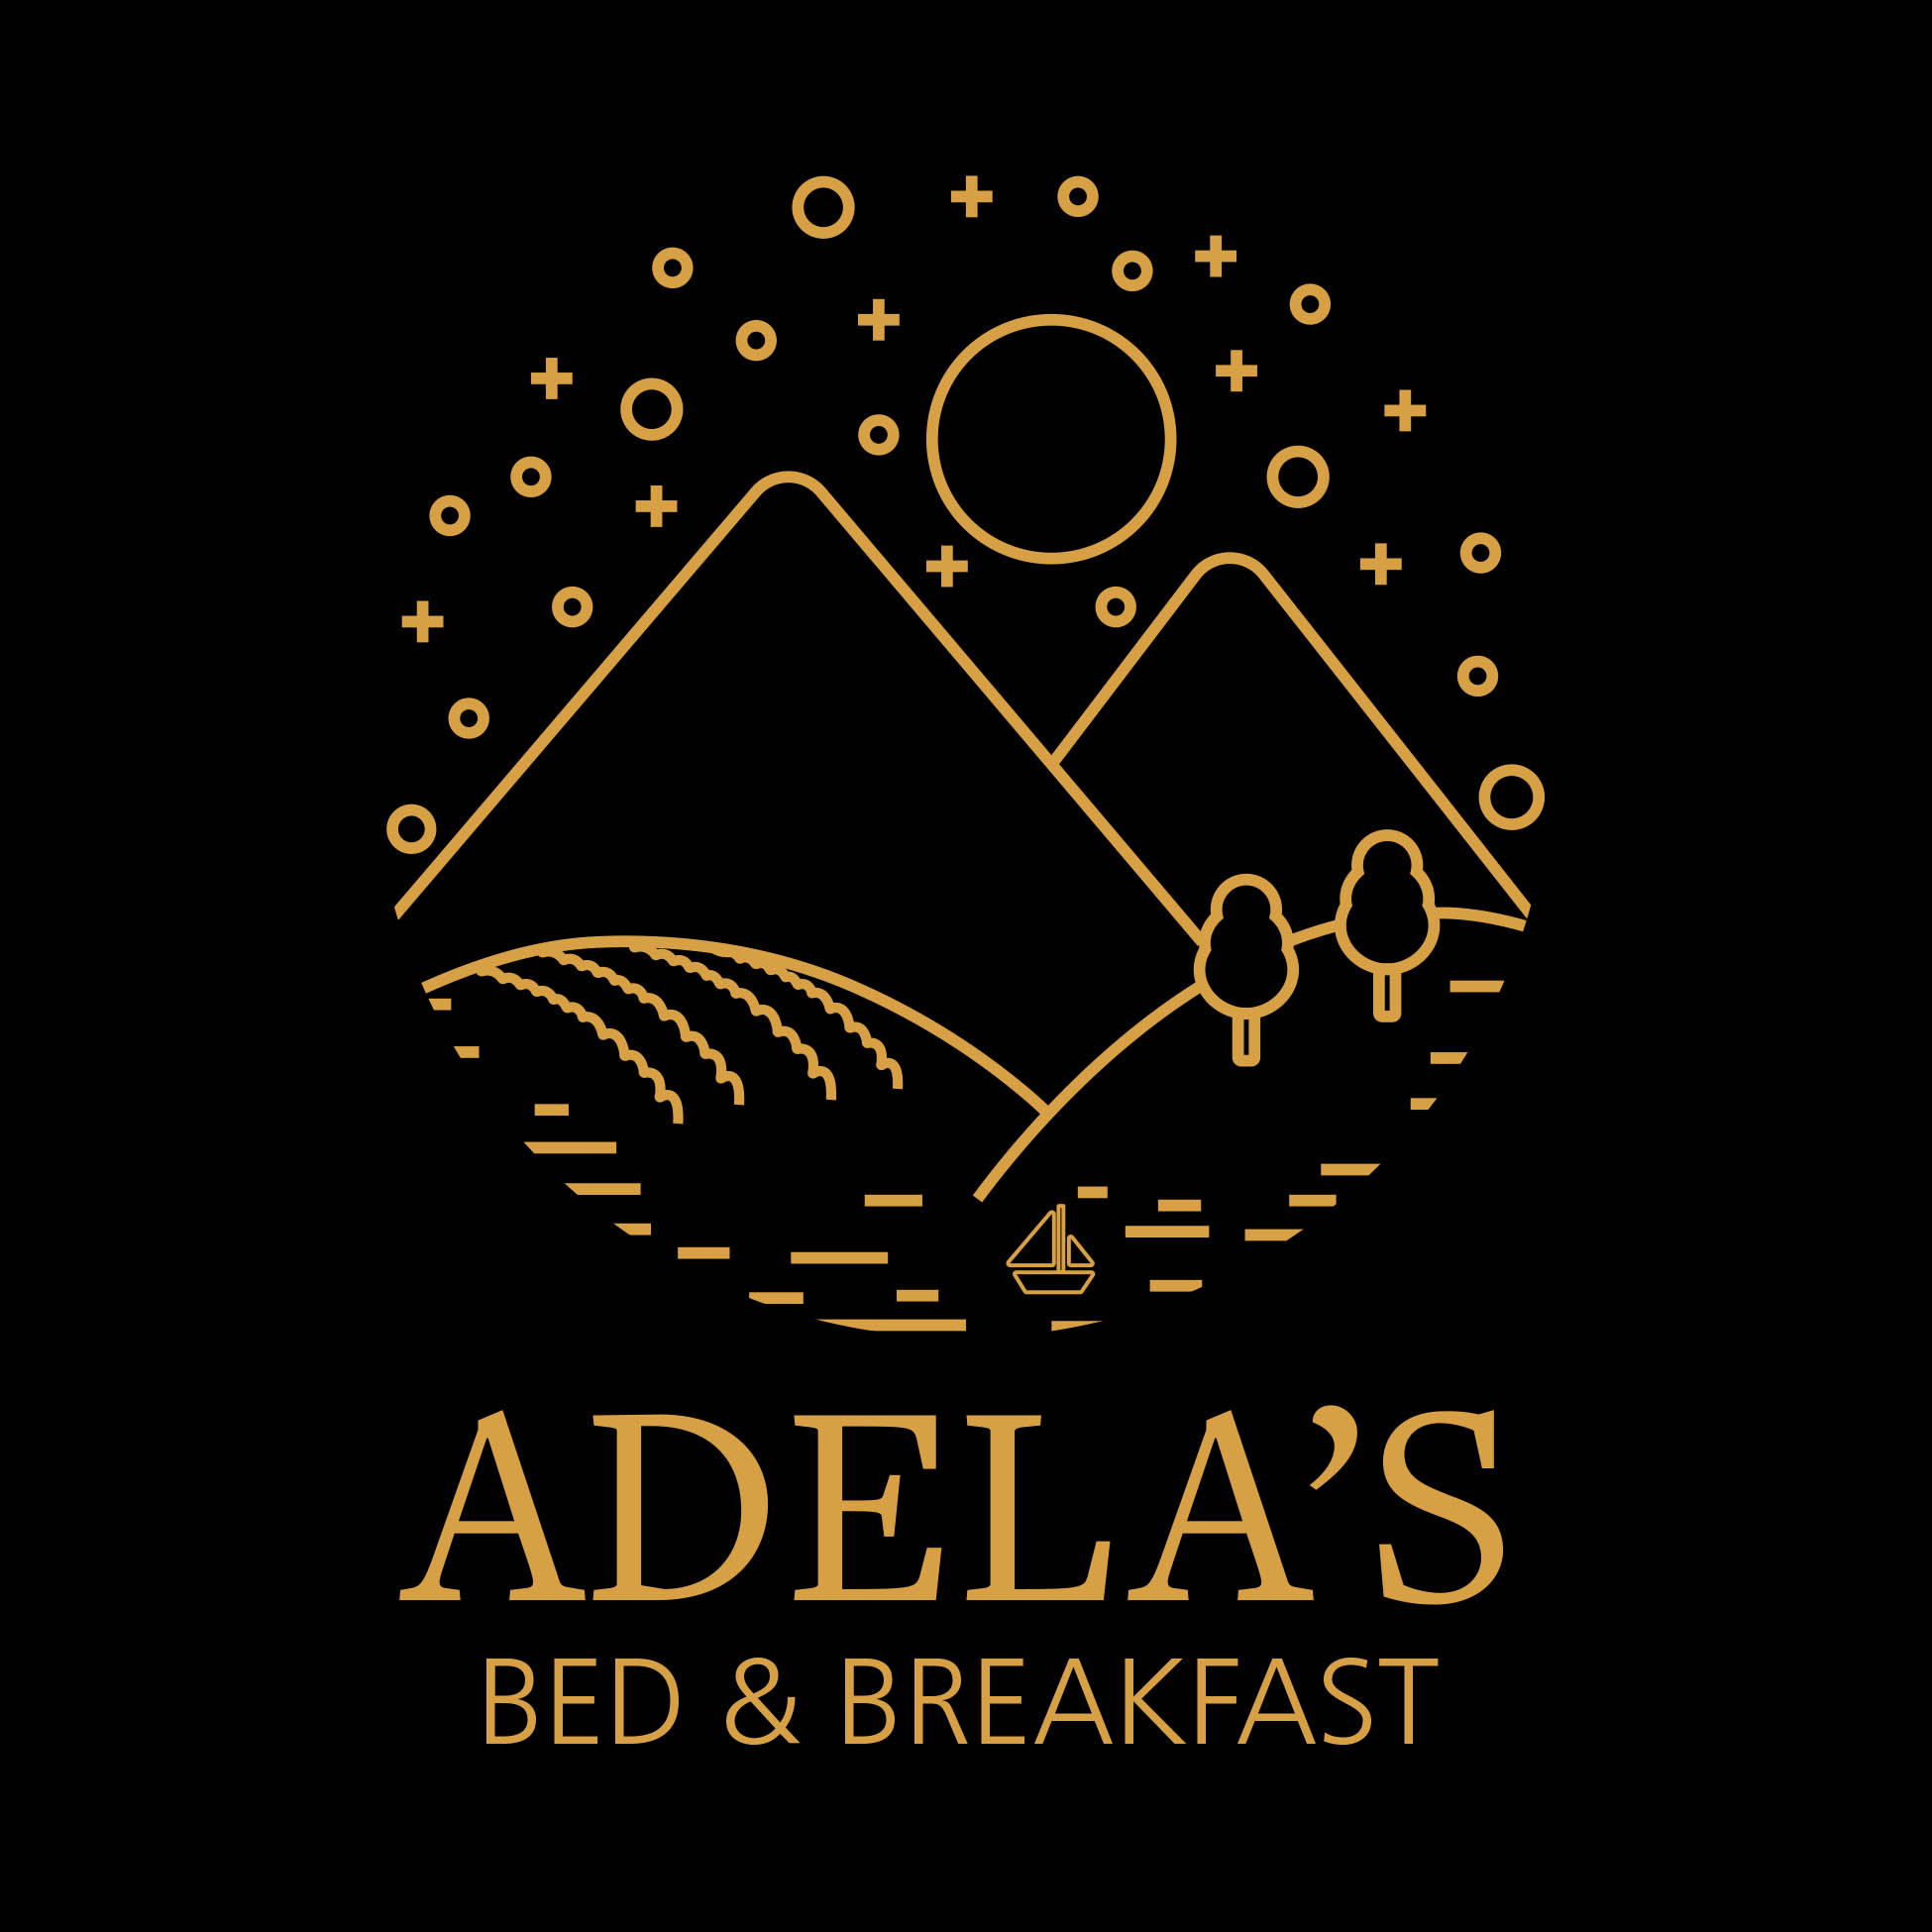 Adela's Bed and Breakfast logo